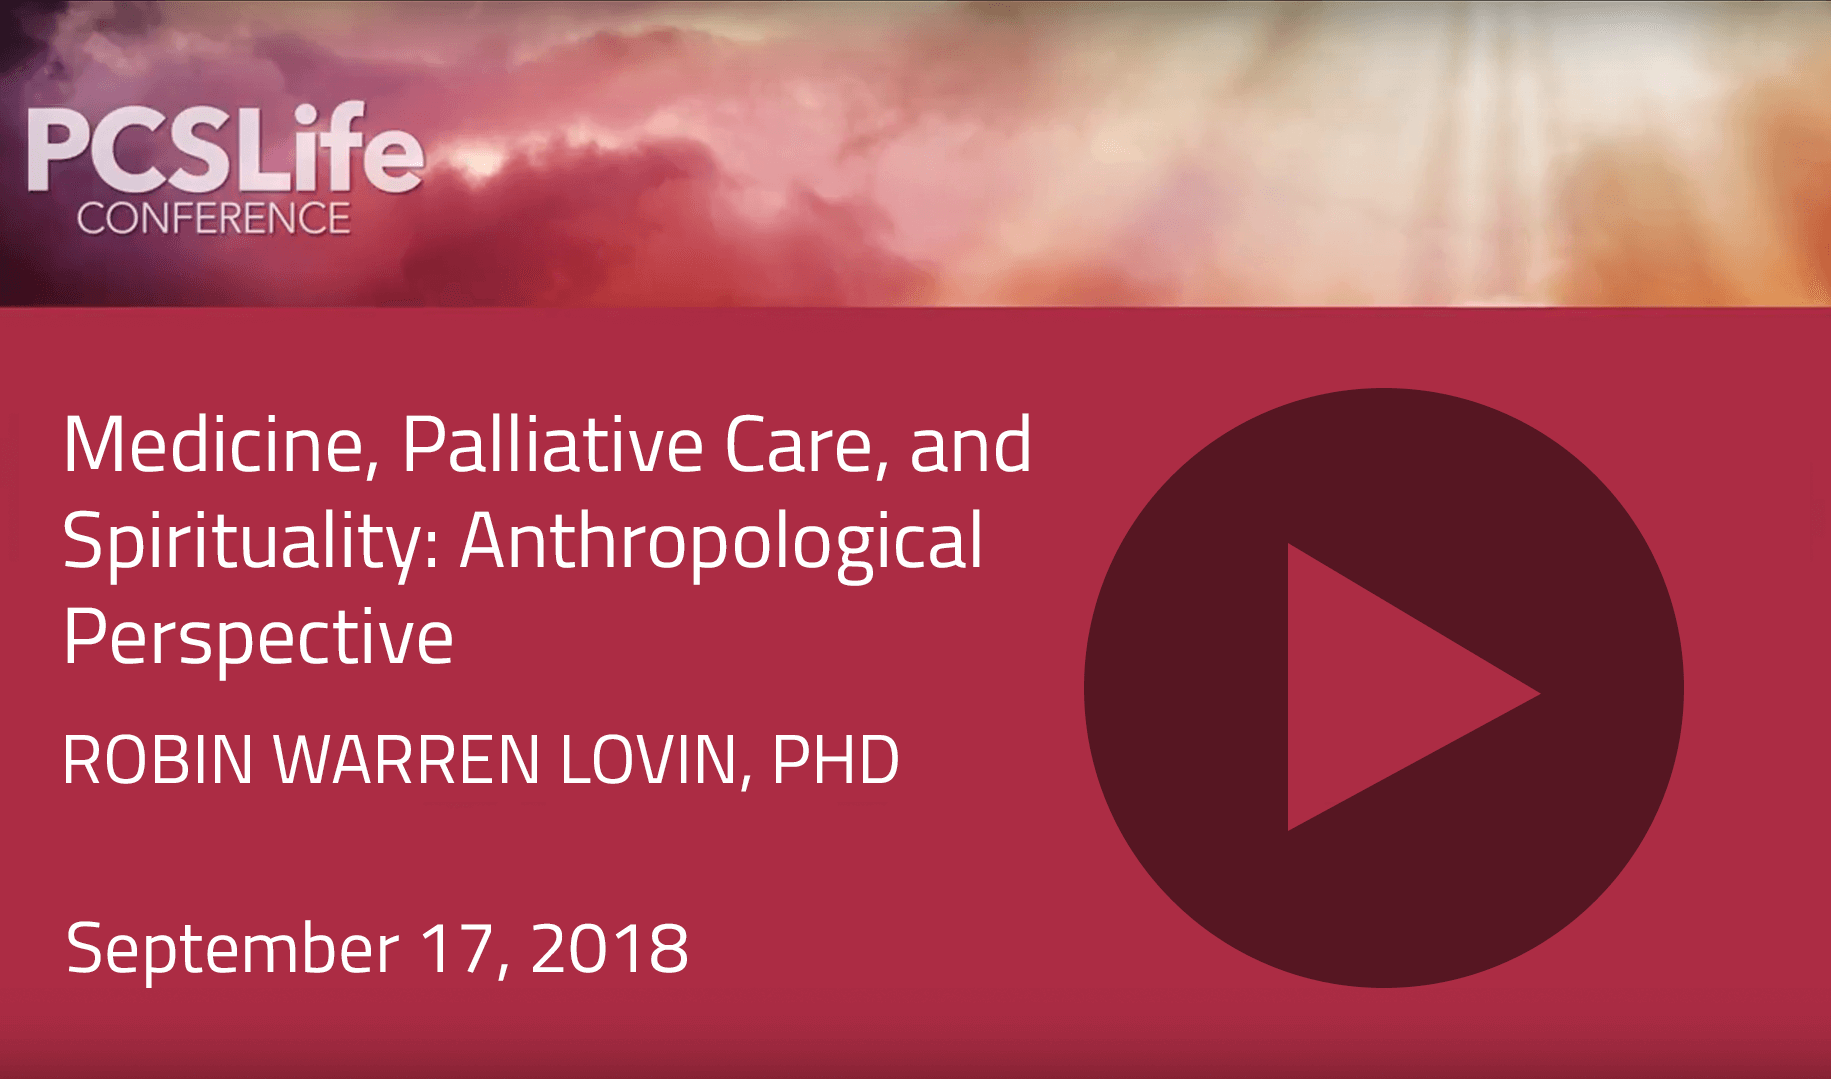 Medicine, Palliative Care, and Spirituality: Anthropological Perspective by Robin Warren Lovin